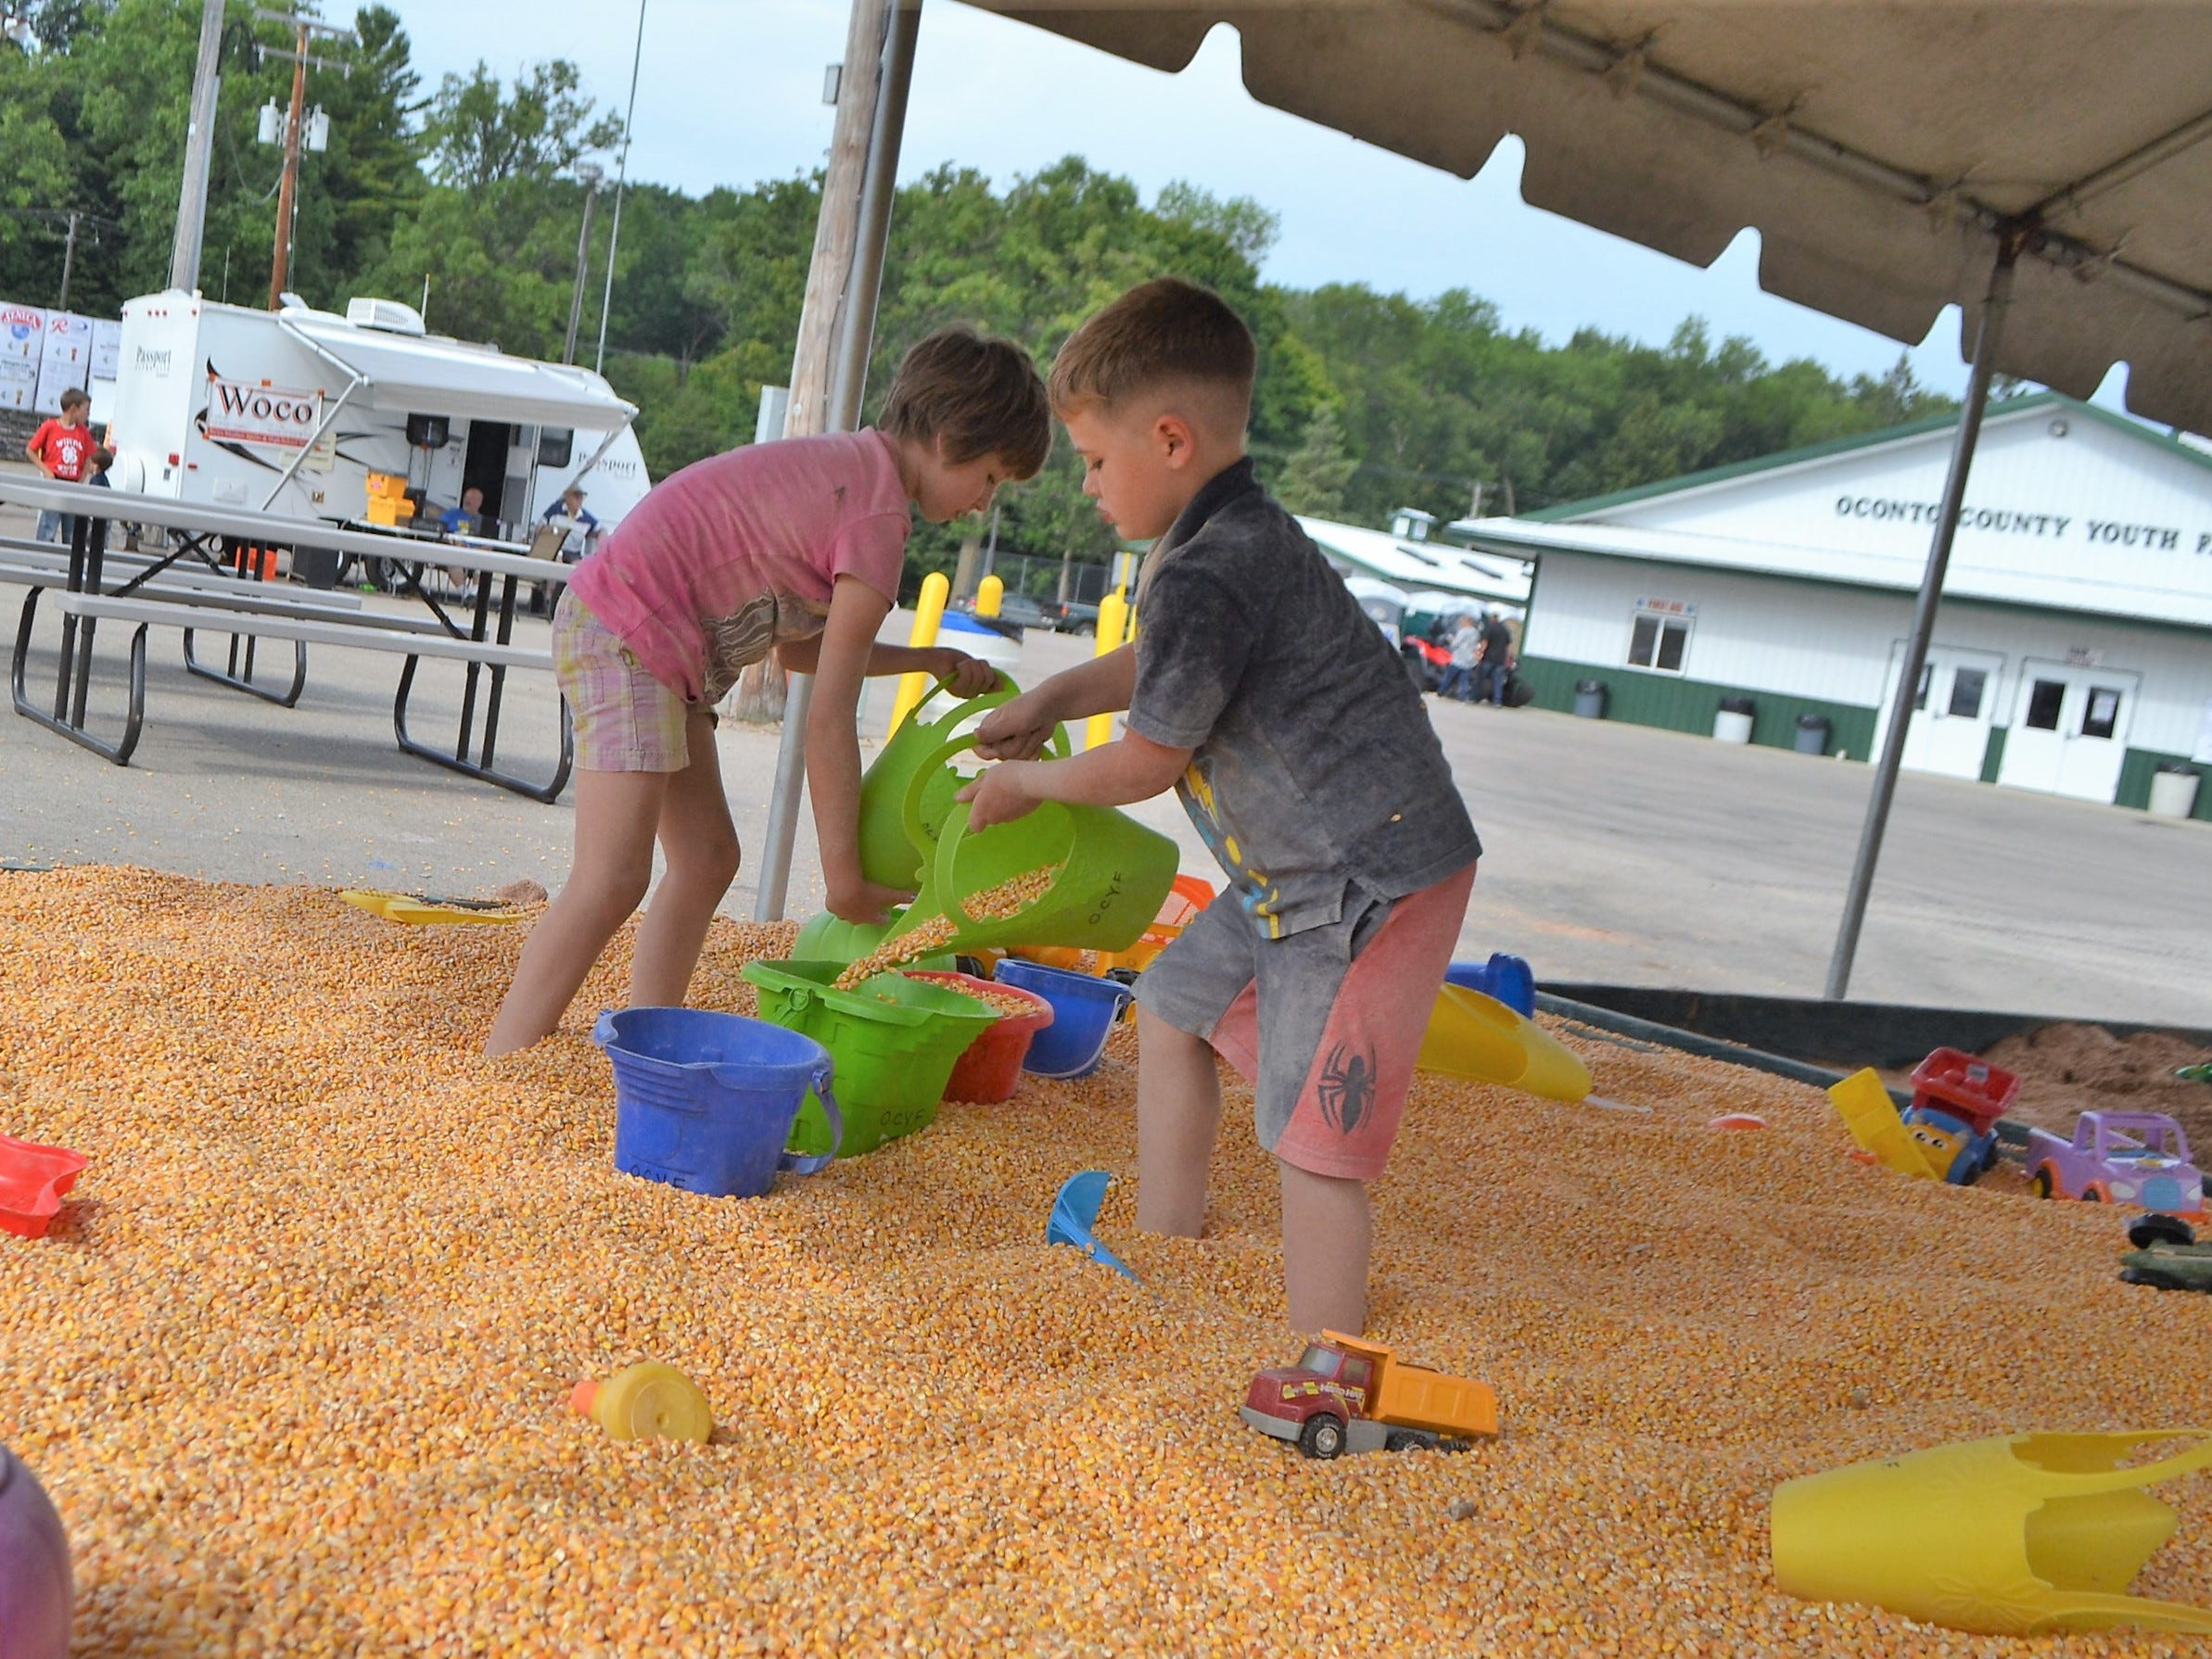 Peyton Williams, 7, and her brother Brandon, 5, were among the many children who enjoyed playing in the corn box at the Oconto County Fair on Thursday, Aug. 16. The corn box is new this year,  while the adjacent sandbox, which also was getting plenty of use, was first set up last year.